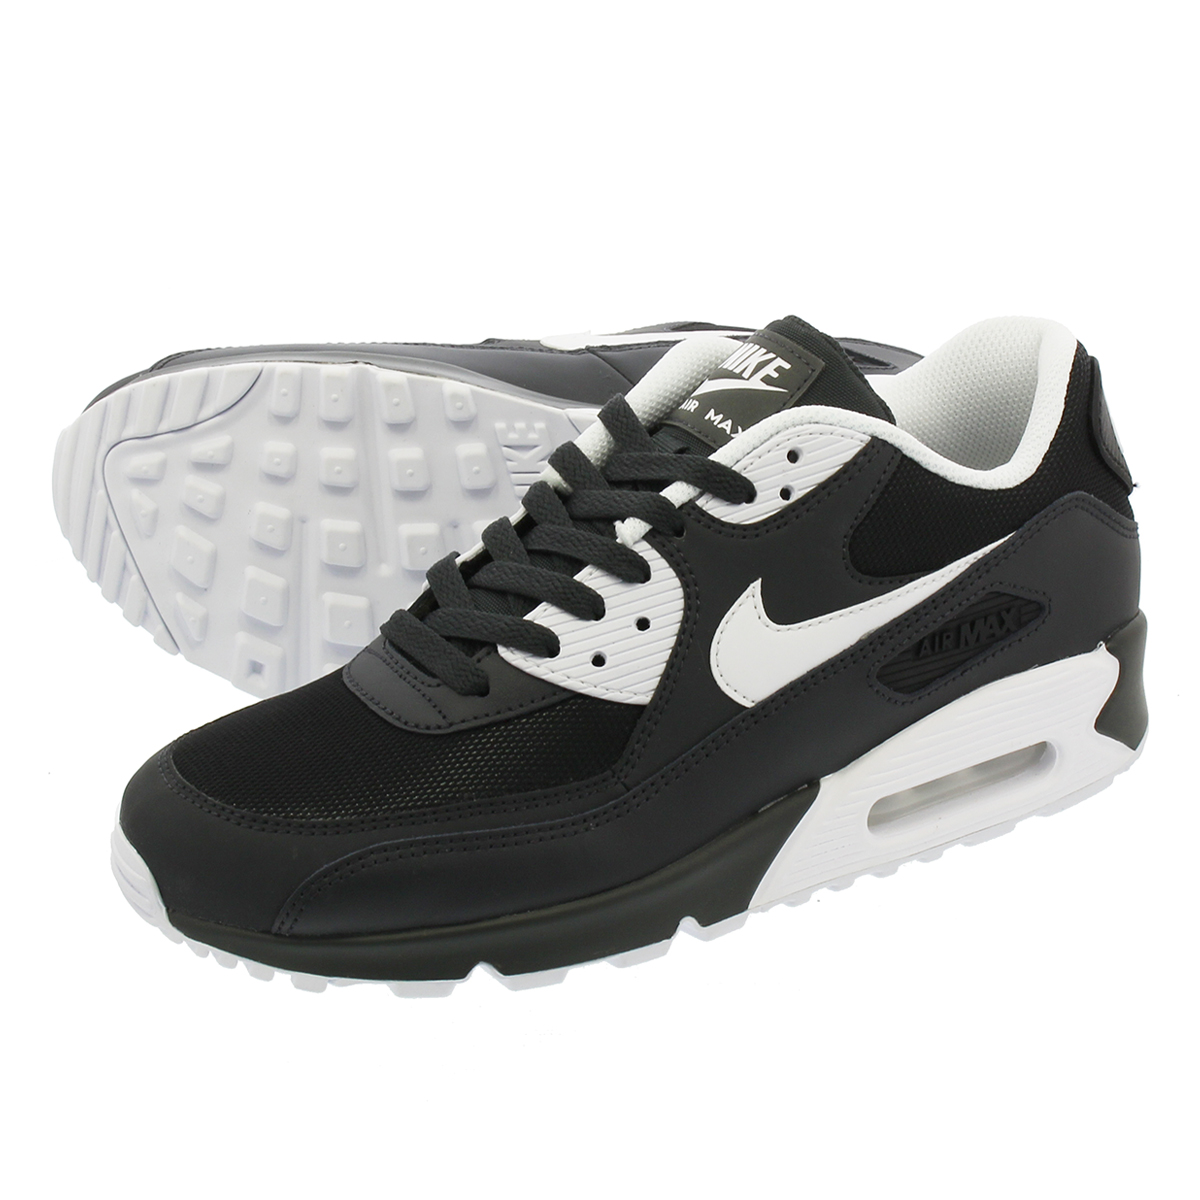 Nike Air Max 90 Essential Anthracite White Black Purchaze